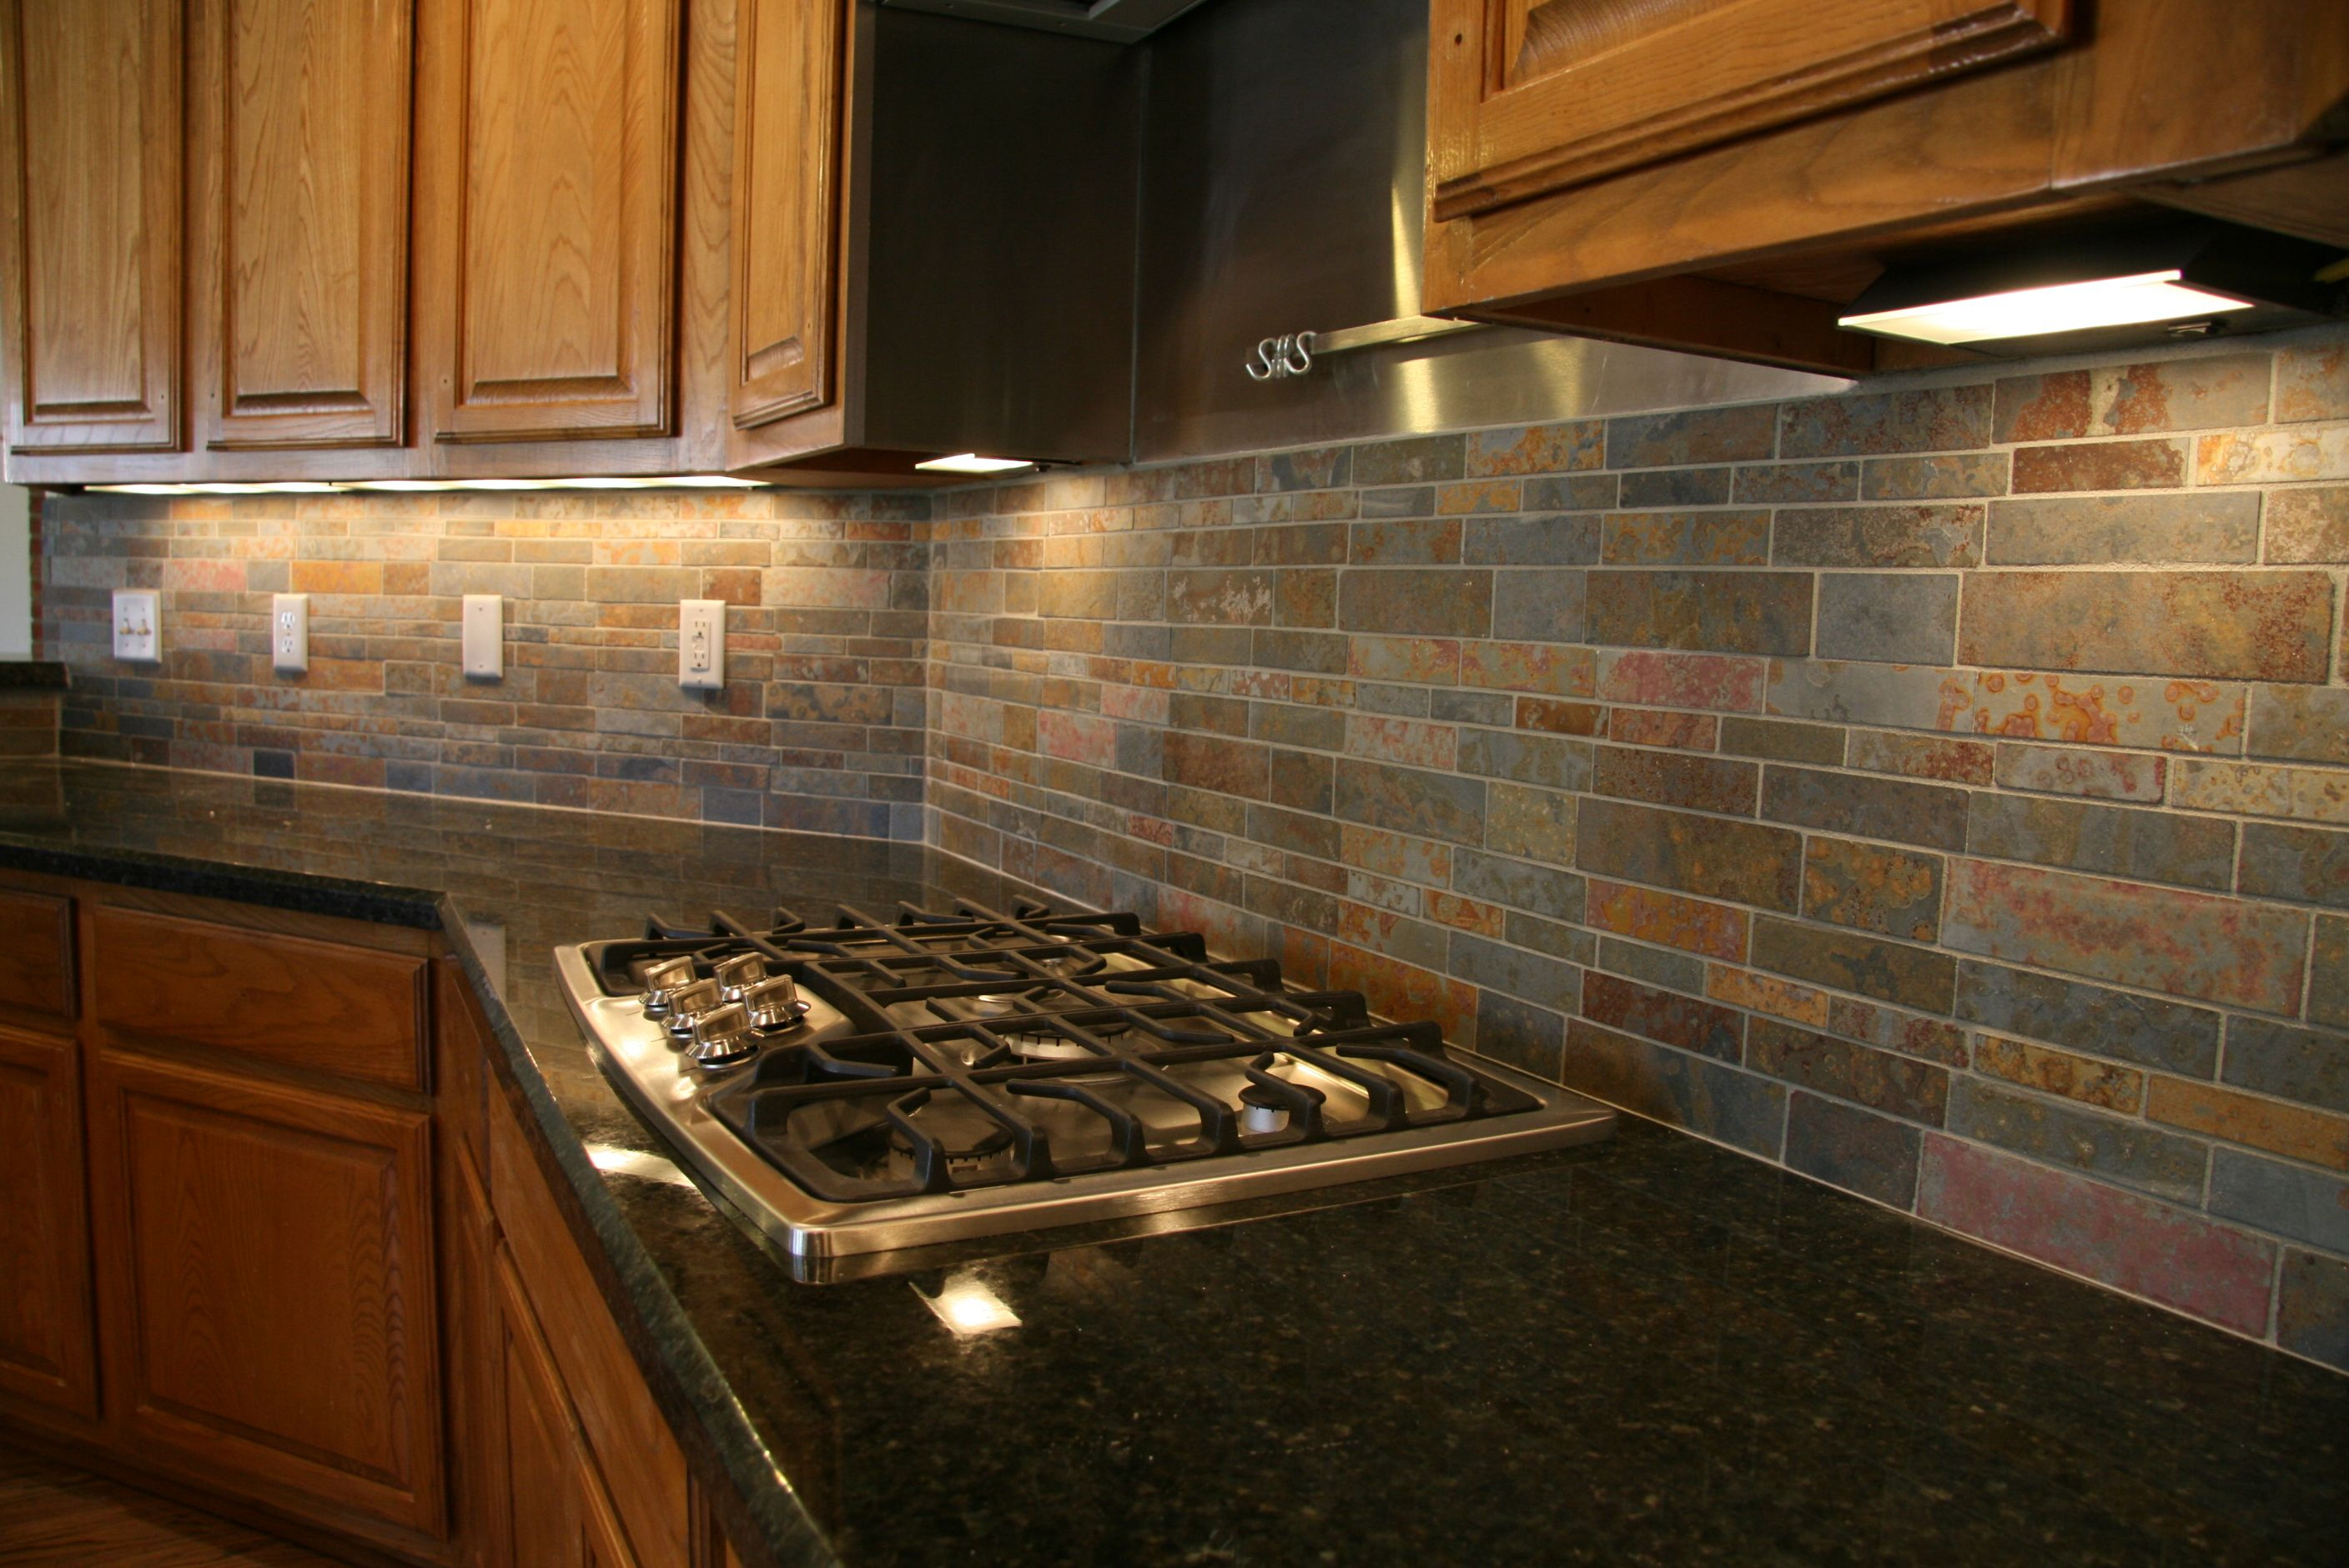 Pin by Chesterly ONeal on Home   Black granite countertops ... on Backsplash For Black Granite Countertops And Brown Cabinets  id=87084